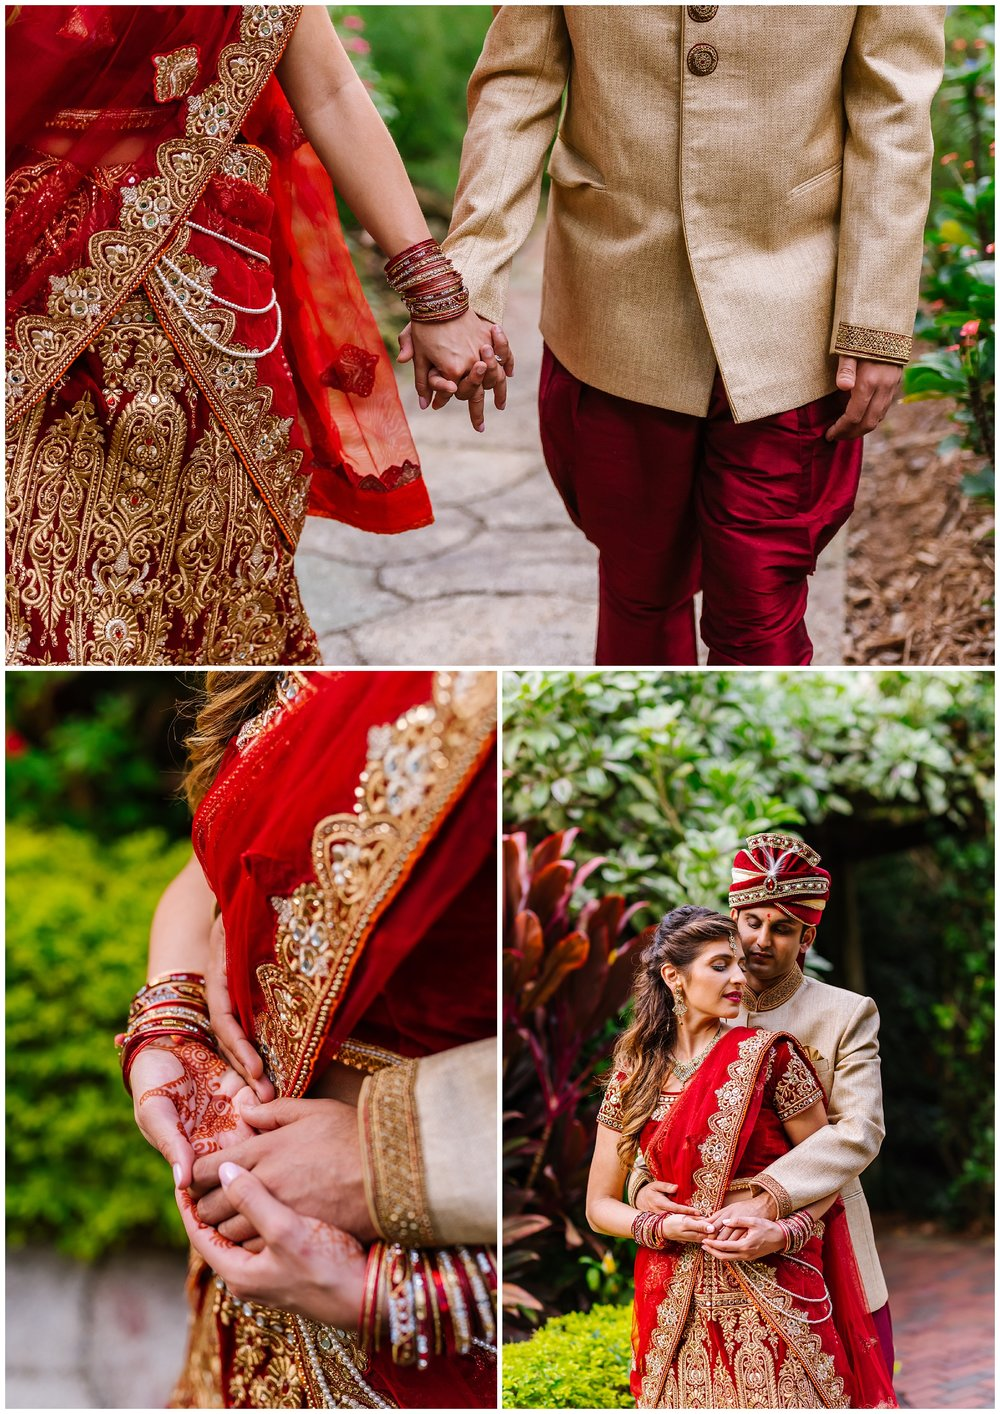 St-pete-indian-wedding-photographer-barat-sunken-gardens_0135.jpg